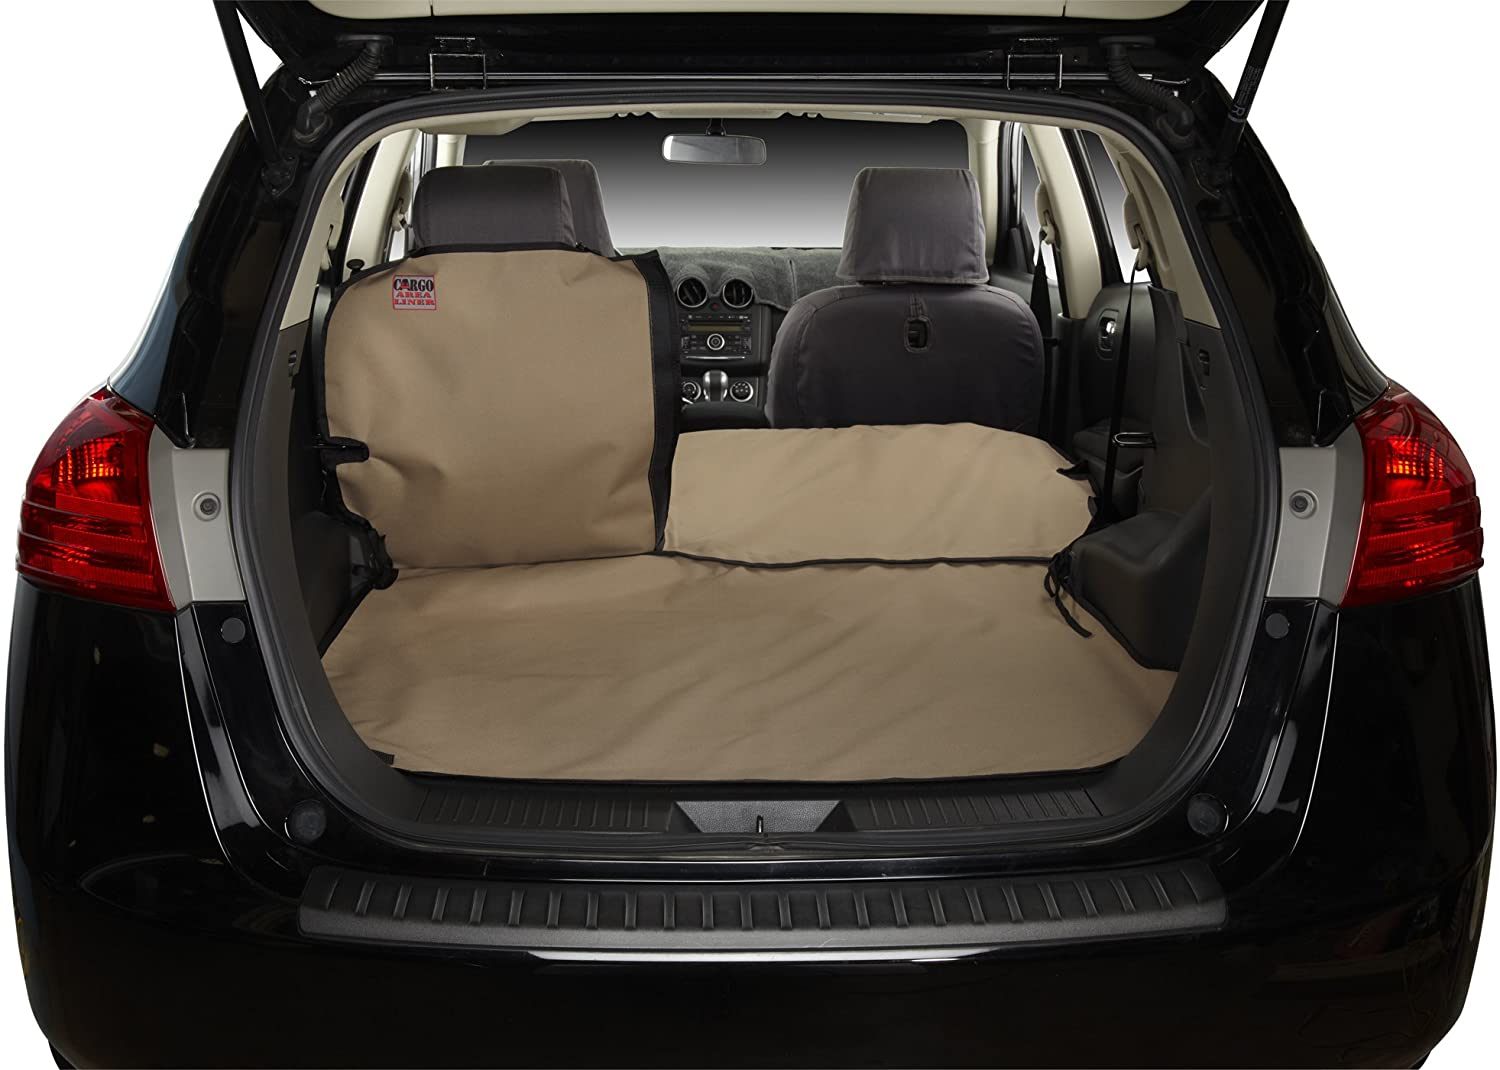 Covercraft Custom Fit Cargo Liner for Select Nissan Versa Models - Polycotton (Tan)